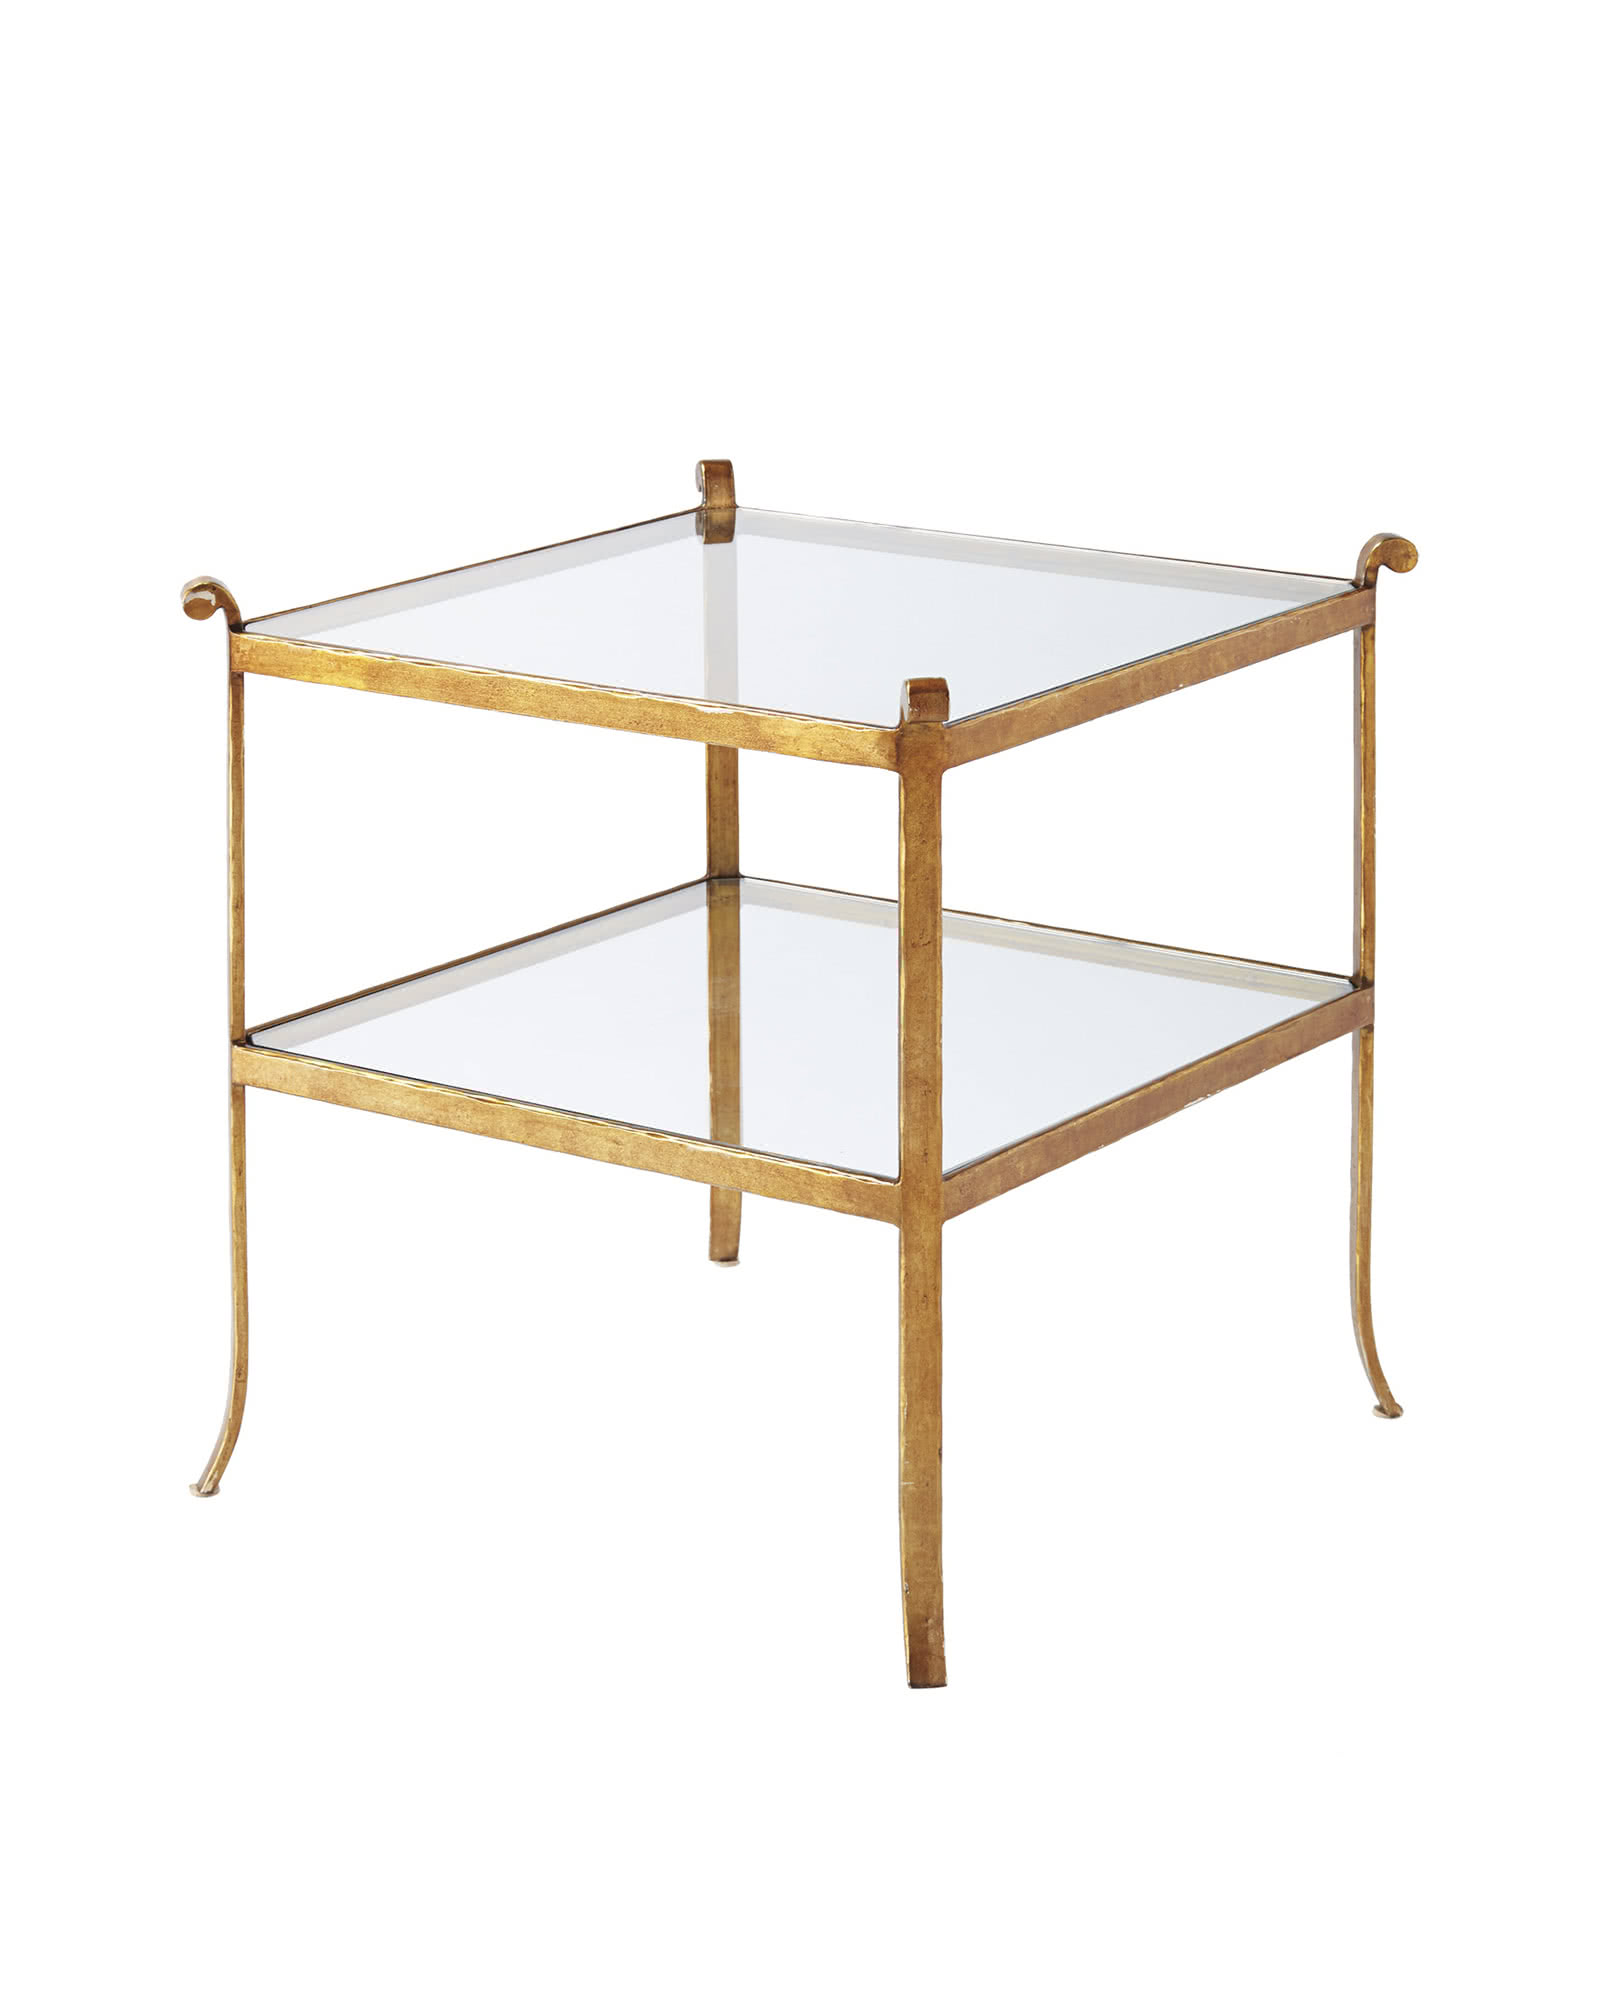 St. Germain Square Side Table,